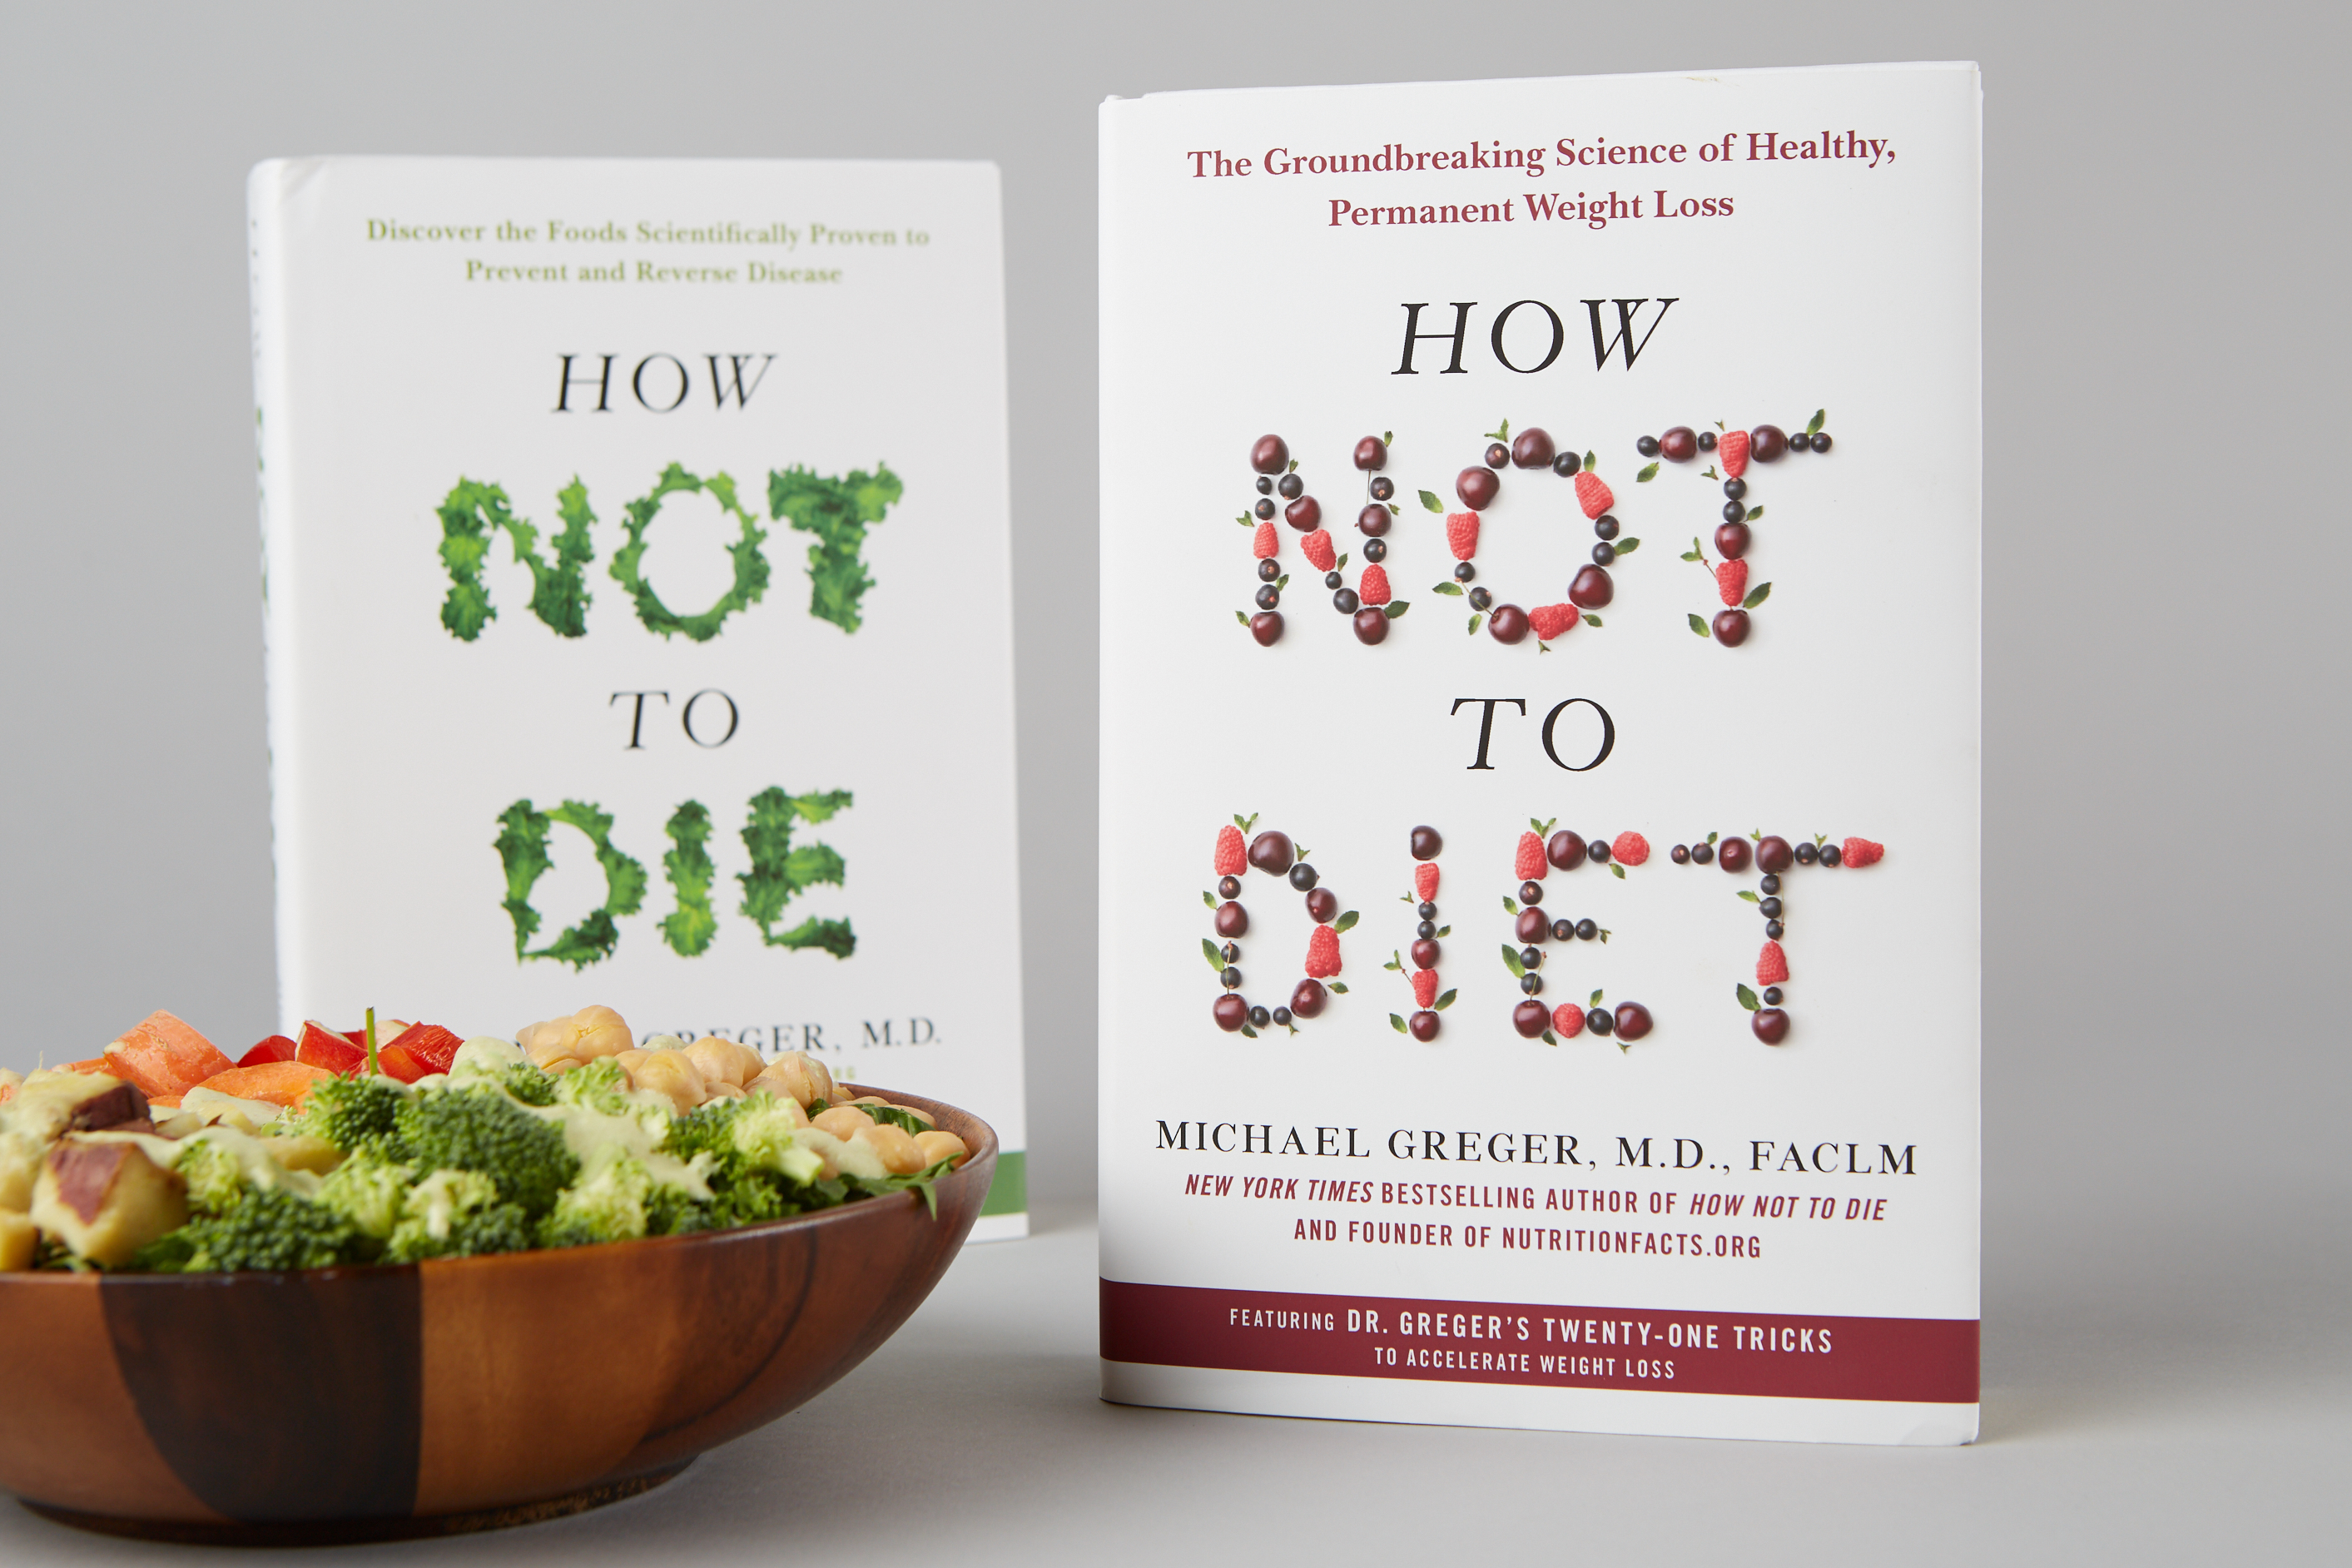 How Not to Die and How Not to Diet